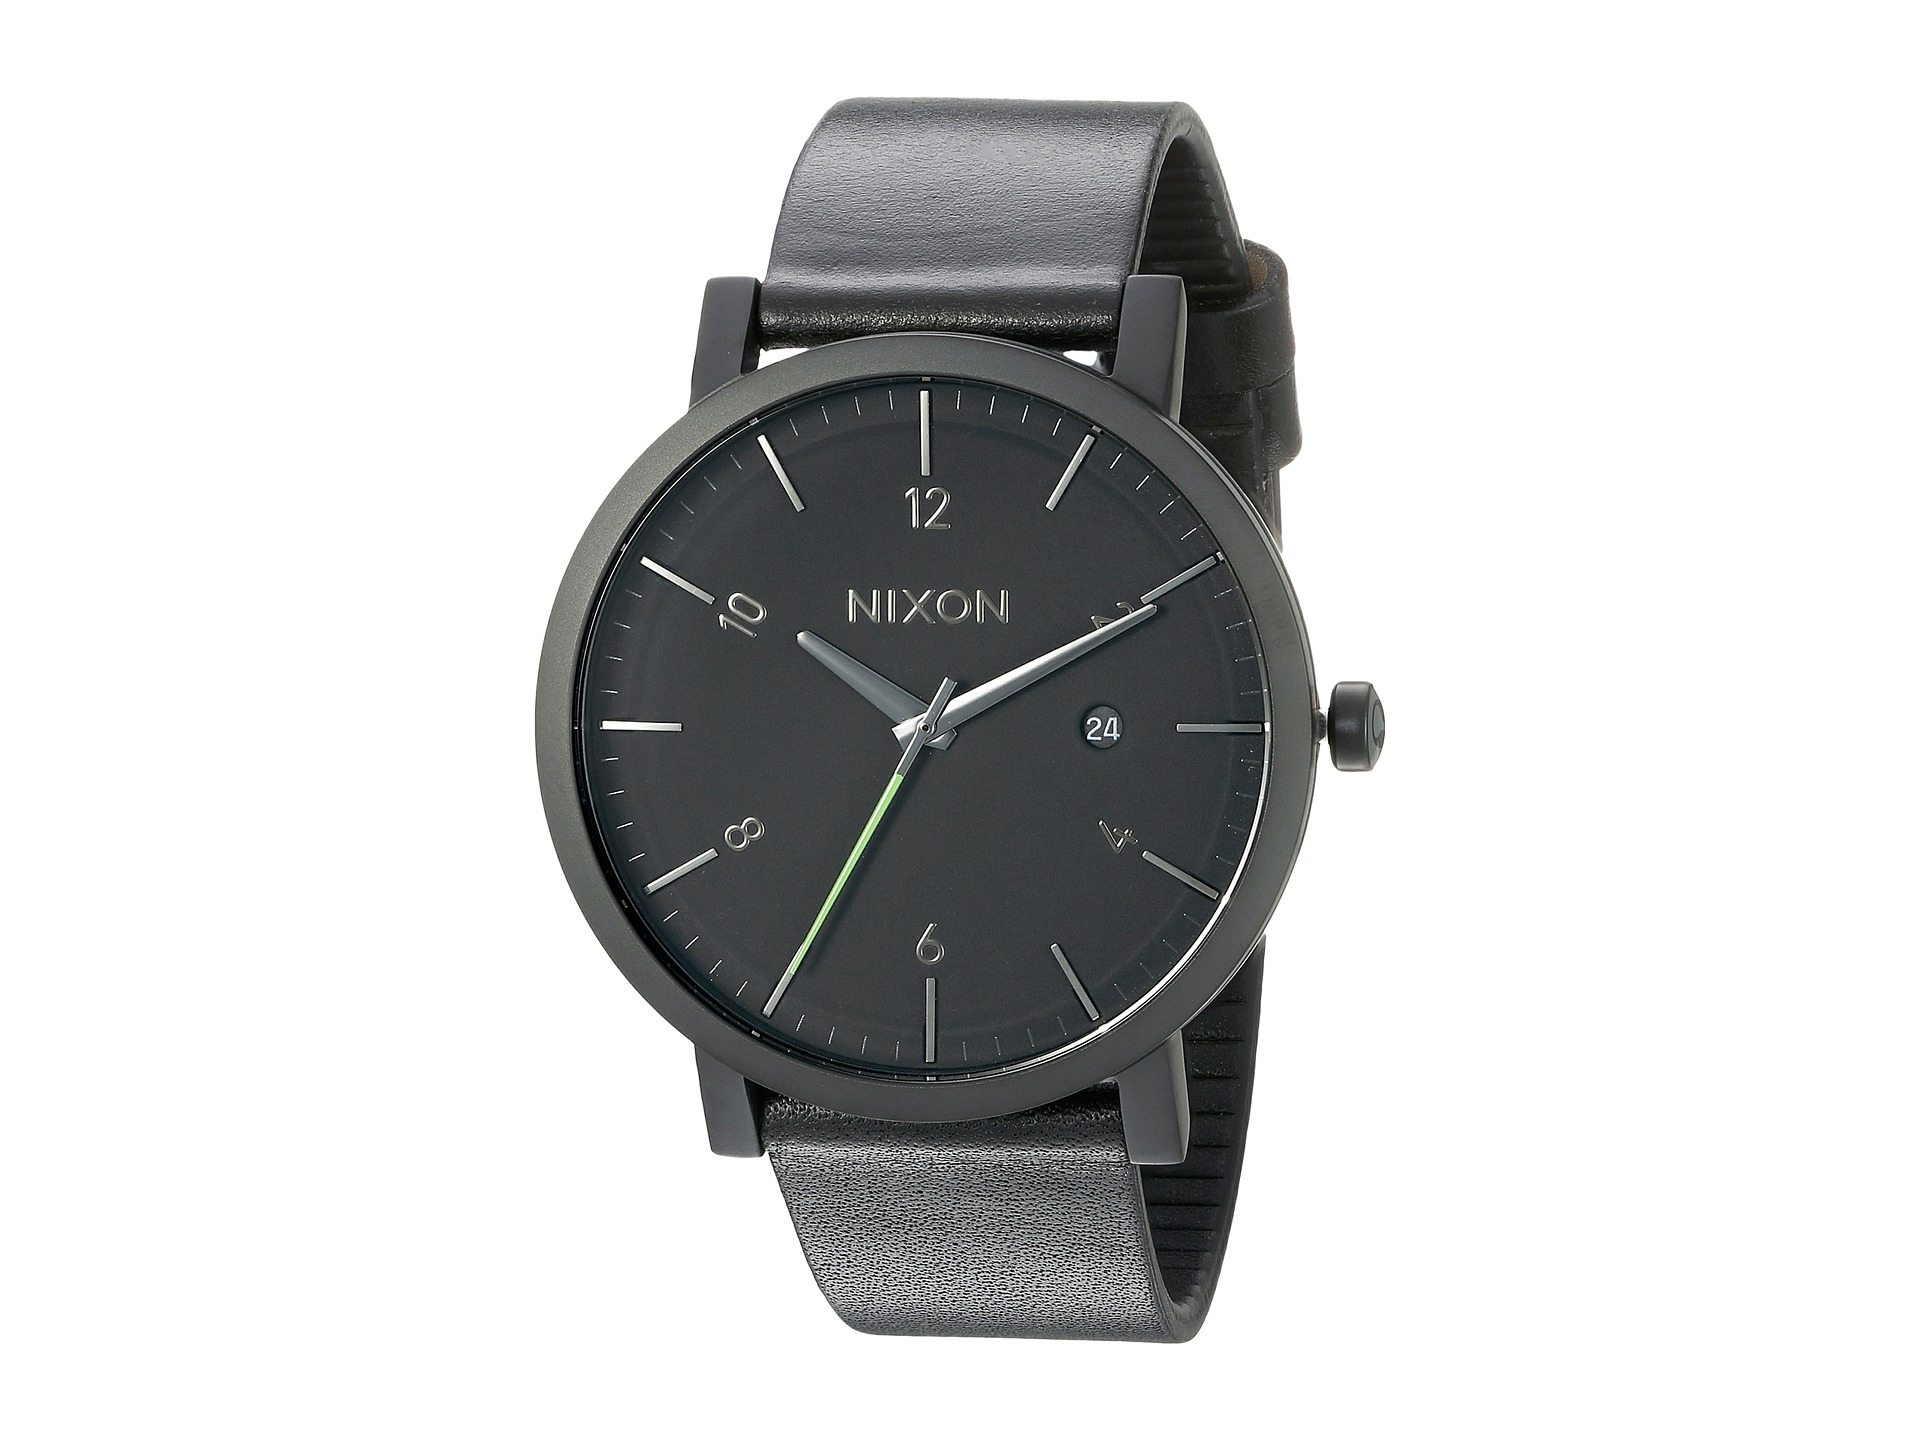 Rollo 24 Nixon Rollo Watch All Black A945 001 42mm